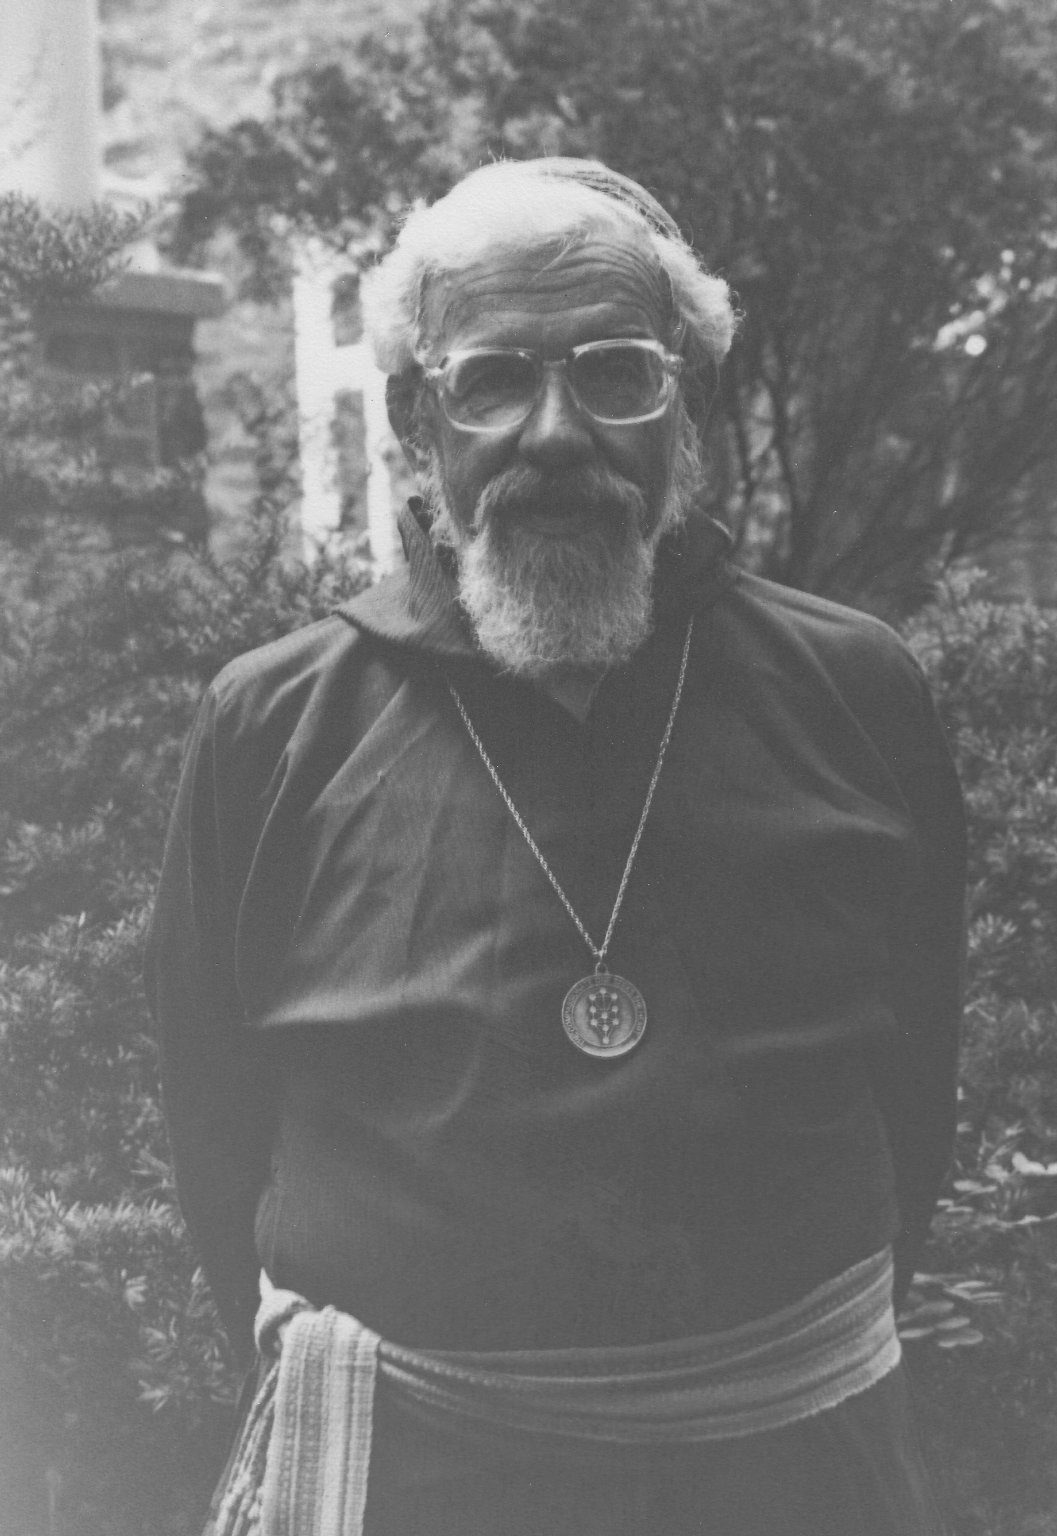 Rabbi Zalman Schachter-Shalomi in sheikh's robe with B'nai Or medallion, ca. 1980s.